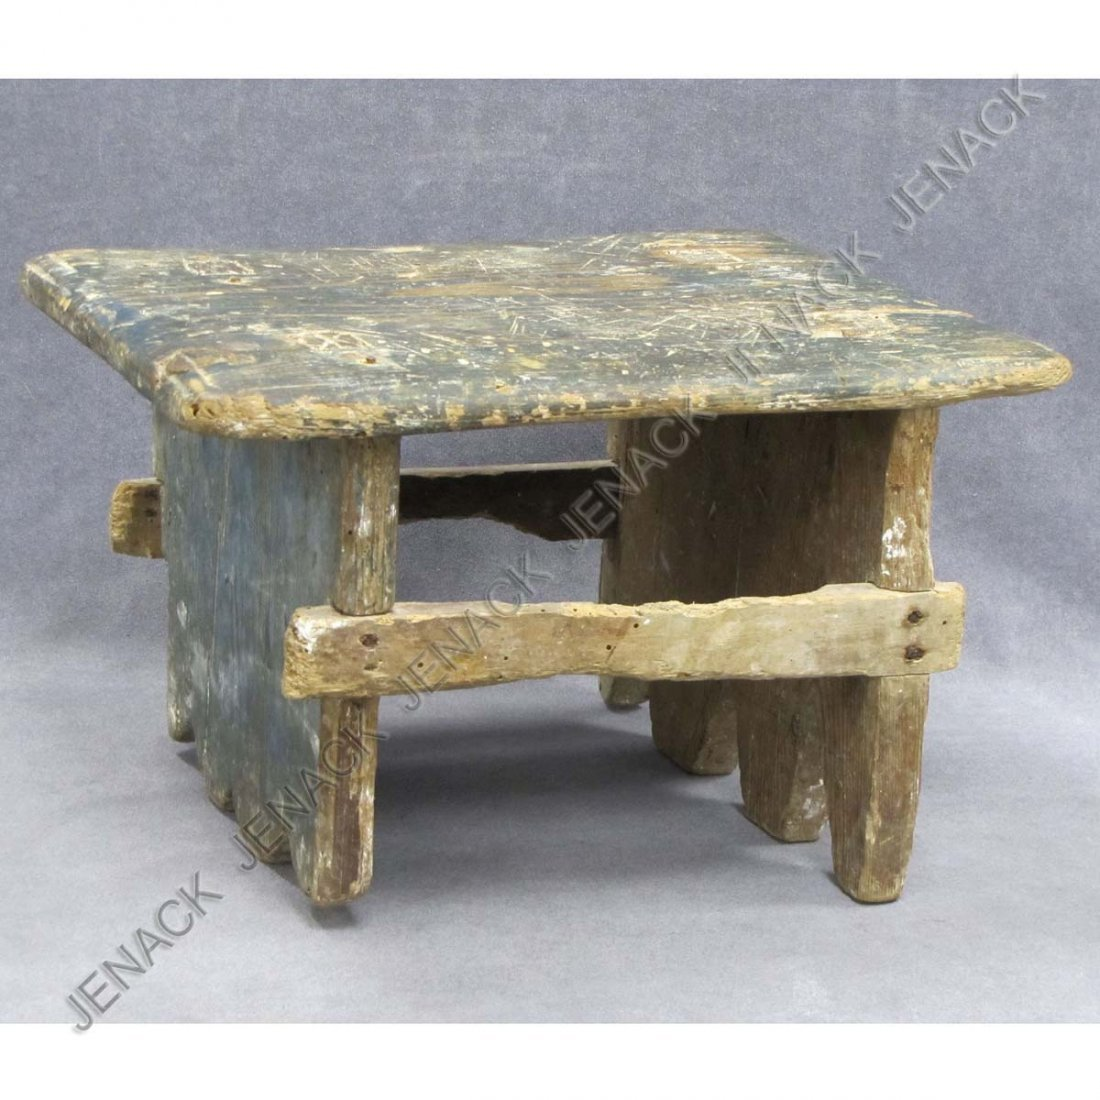 2: EARLY CARVED AND PAINTED WOOD FOOT STOOL